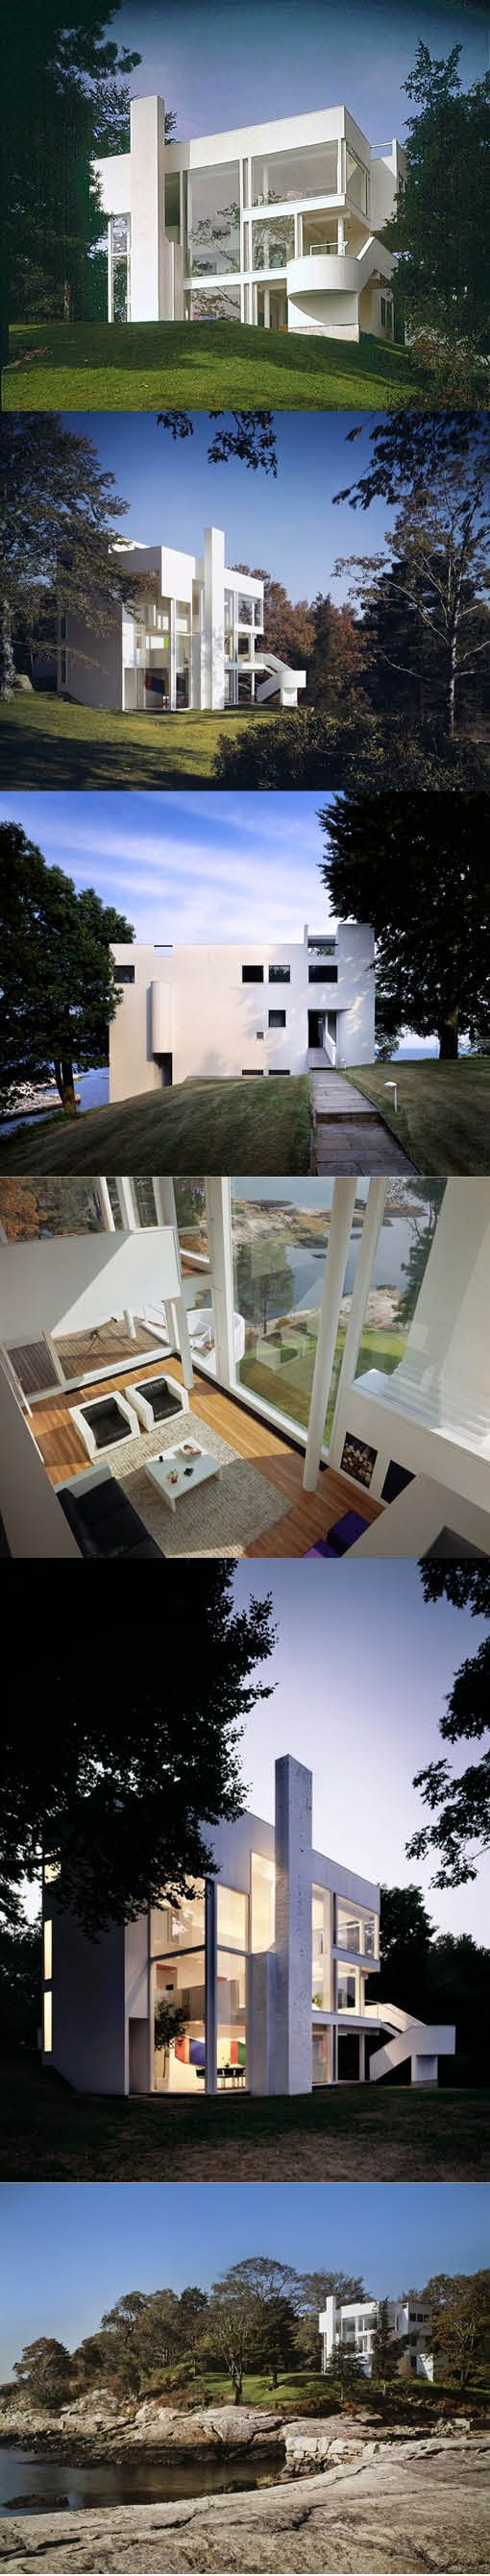 1965-1967 Richard Meier - Smith House / Darien Connecticut USA / wood glass / white